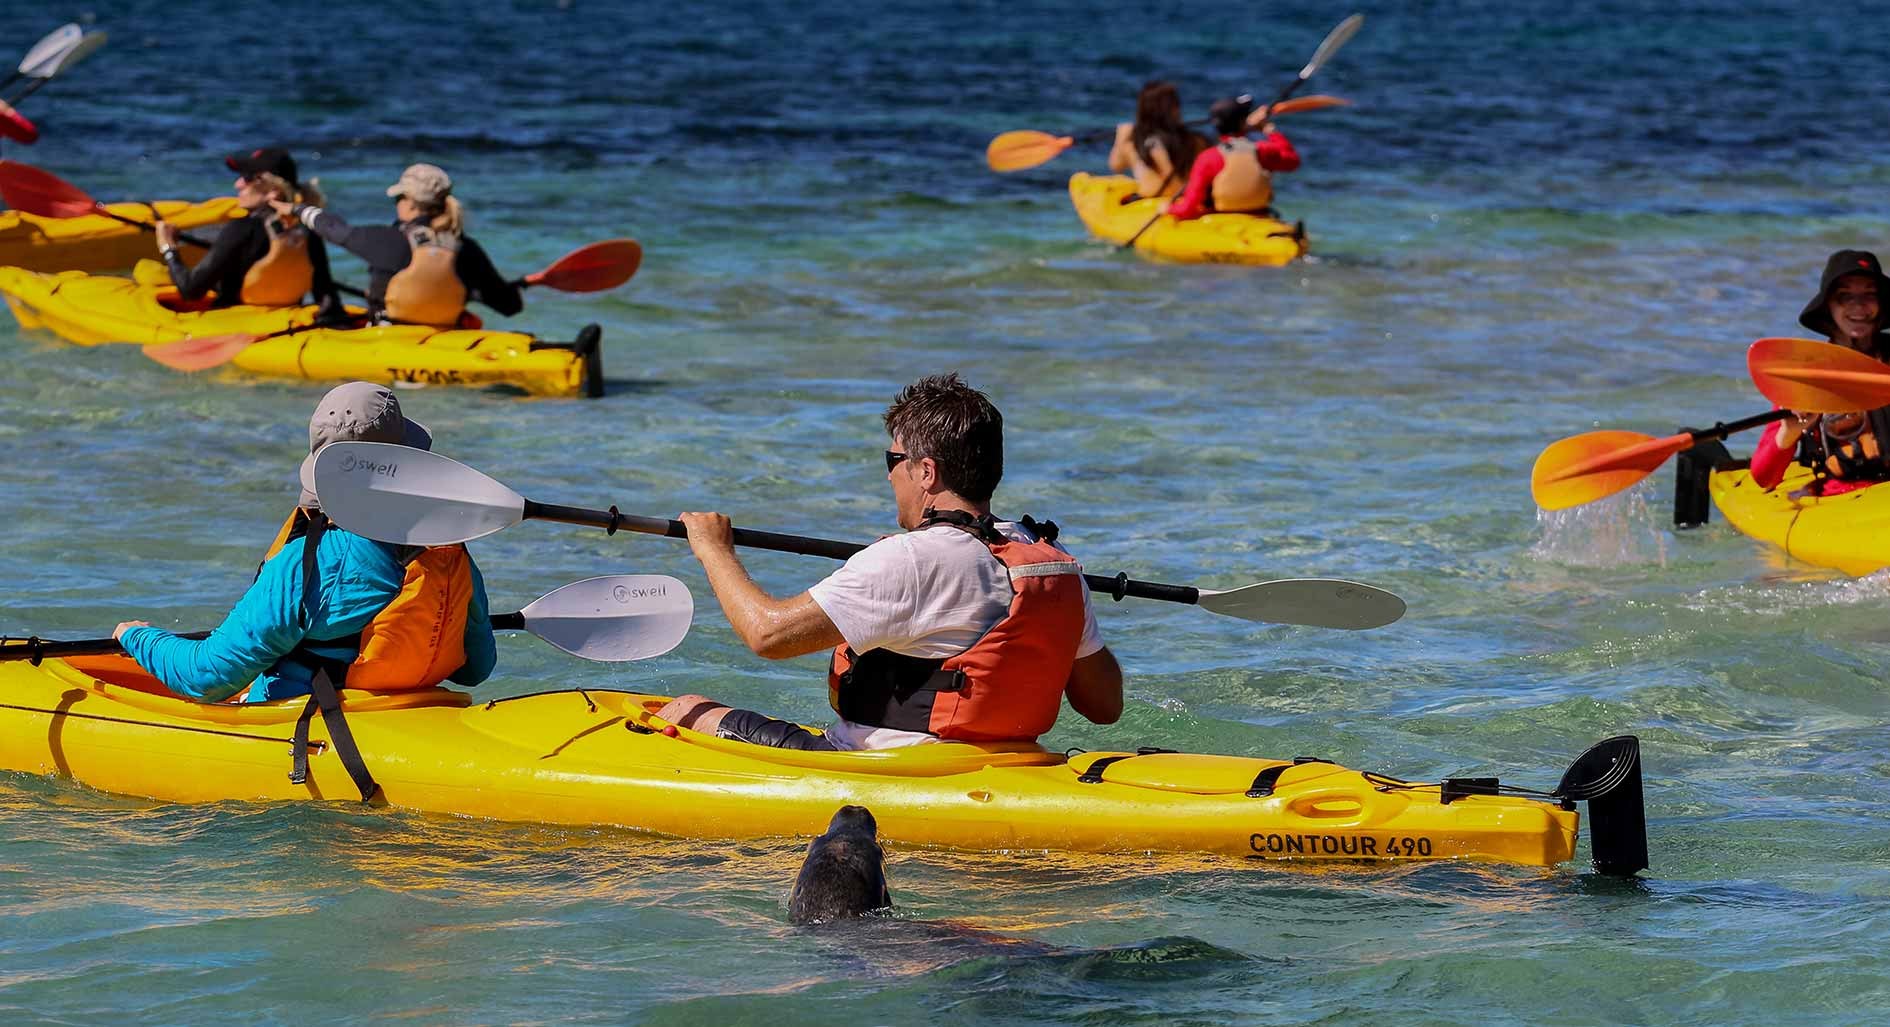 Corporate programs, social programs, sea kayaking tour, corporate tour, team building, corporate adventure, corporate activity, social groups, tour for social groups